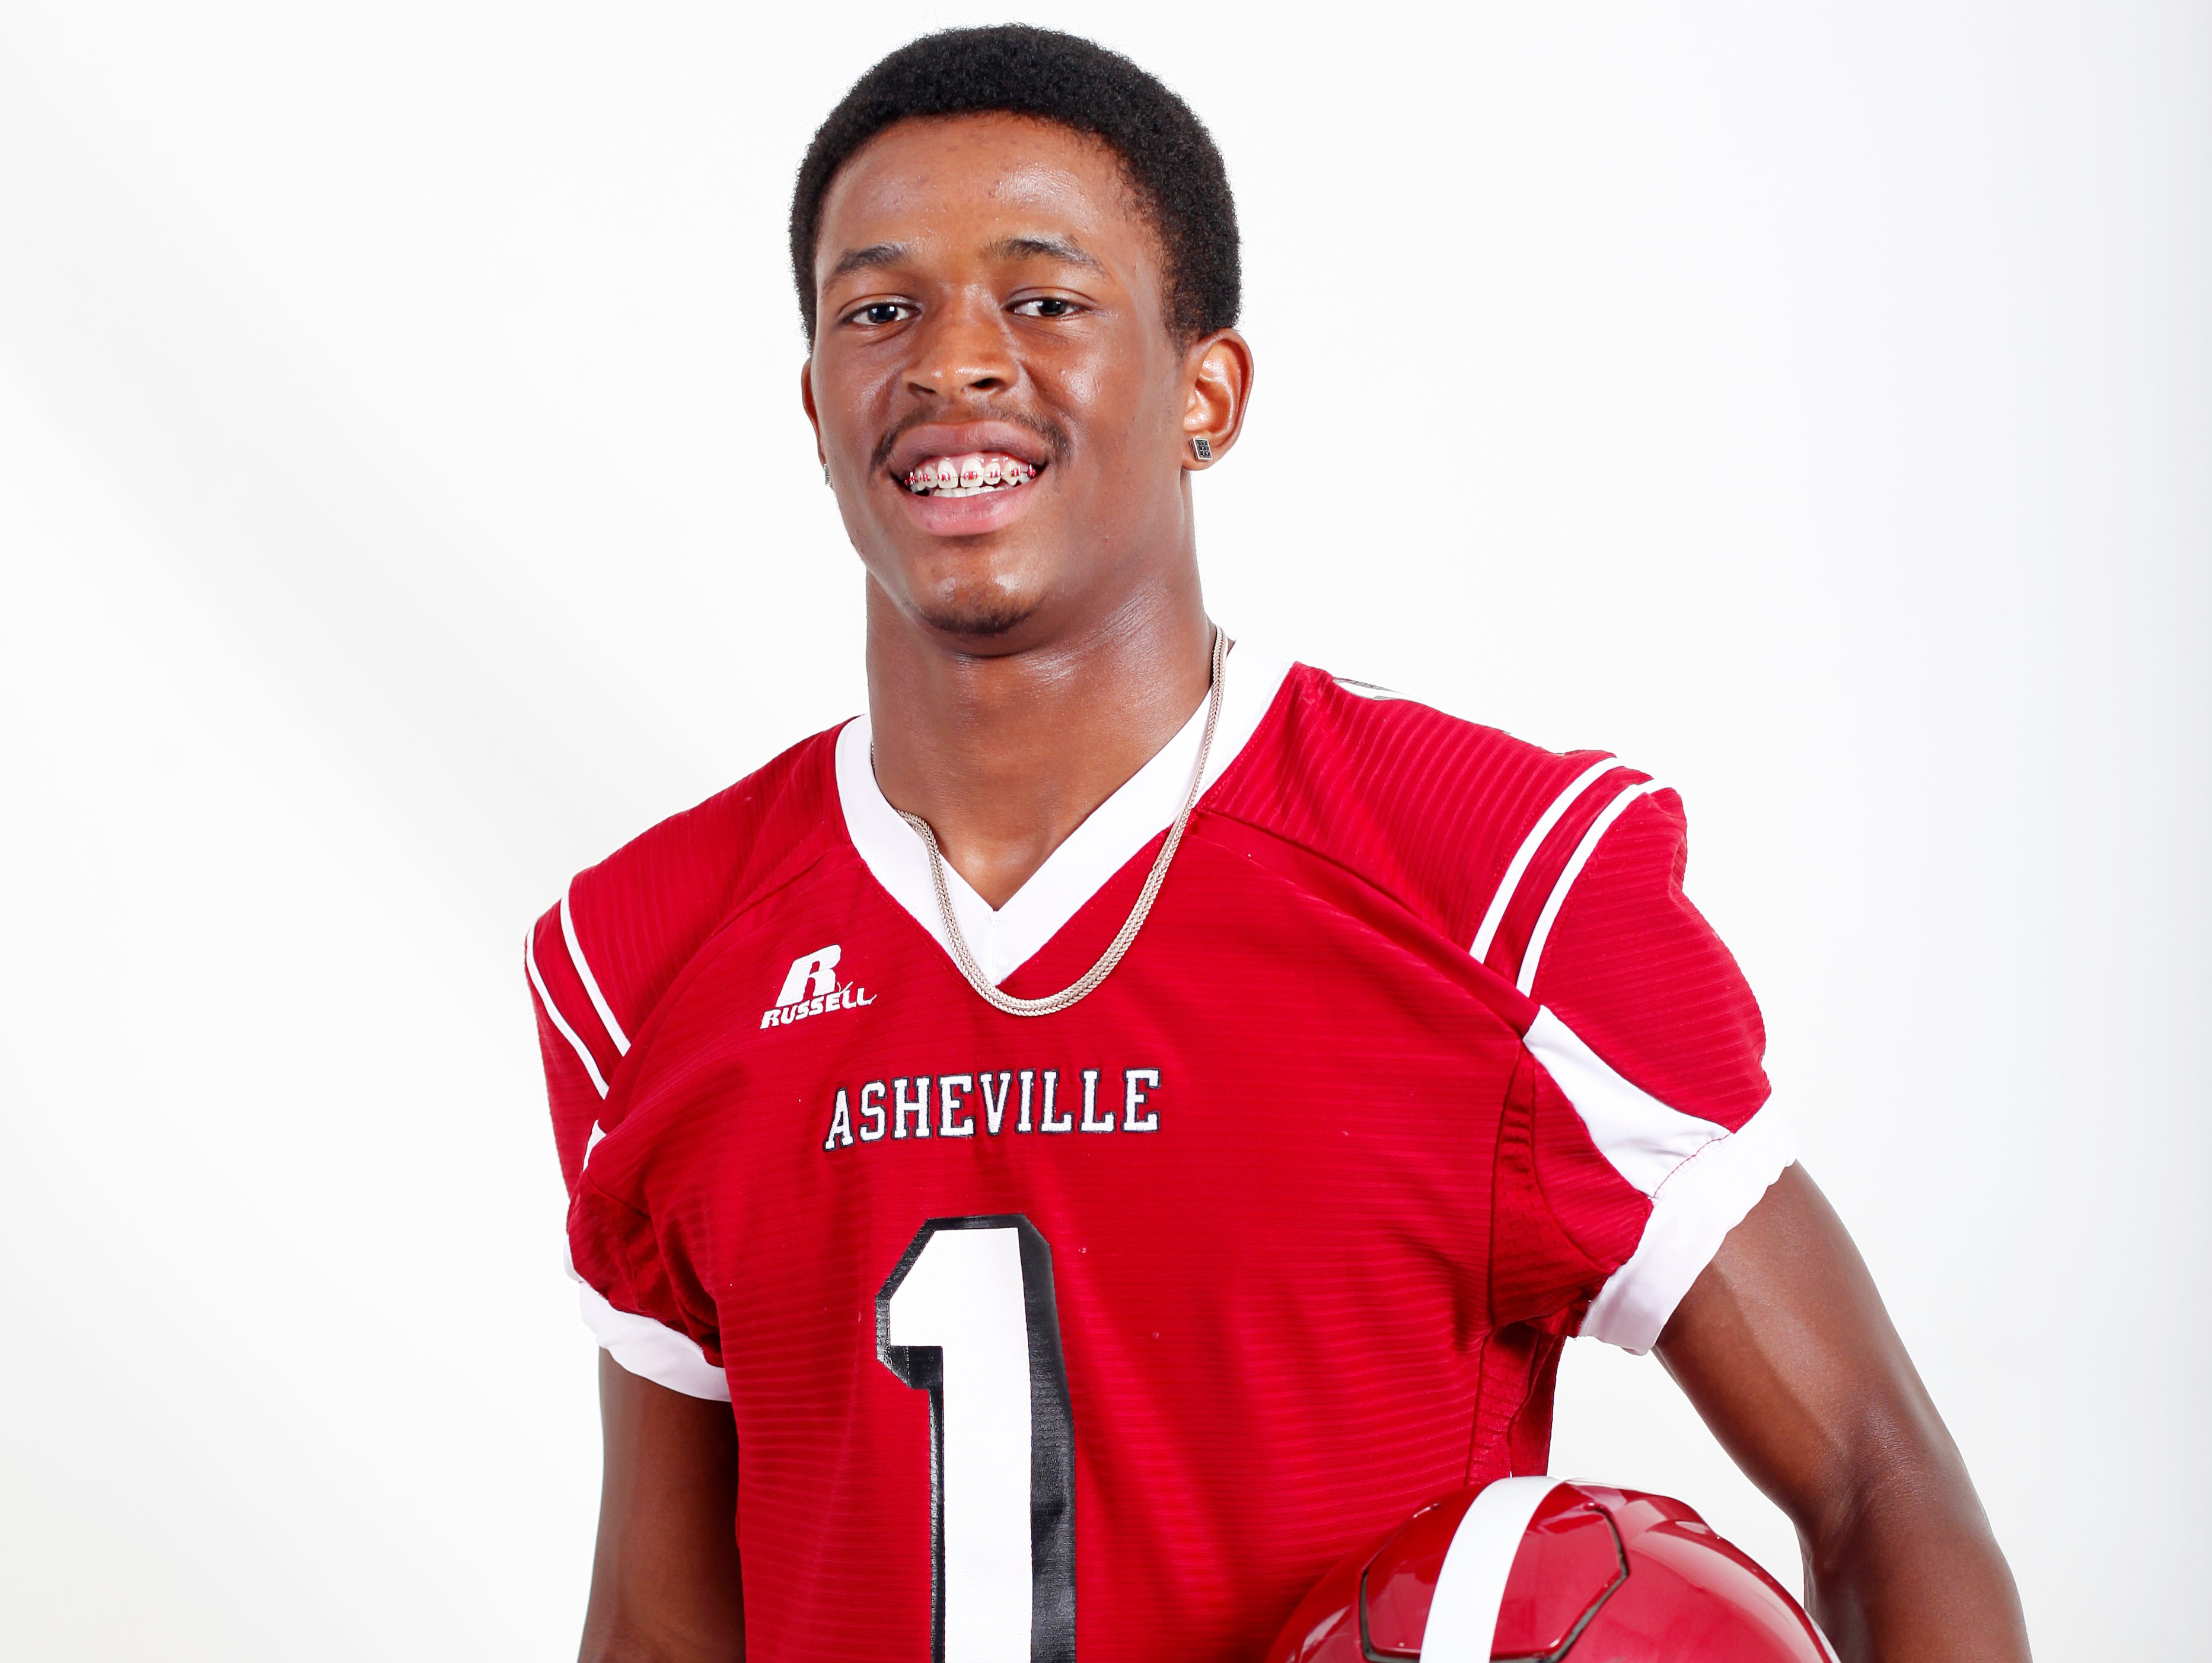 Asheville receiver Makaius Brewer is the Ingles athlete of the week.